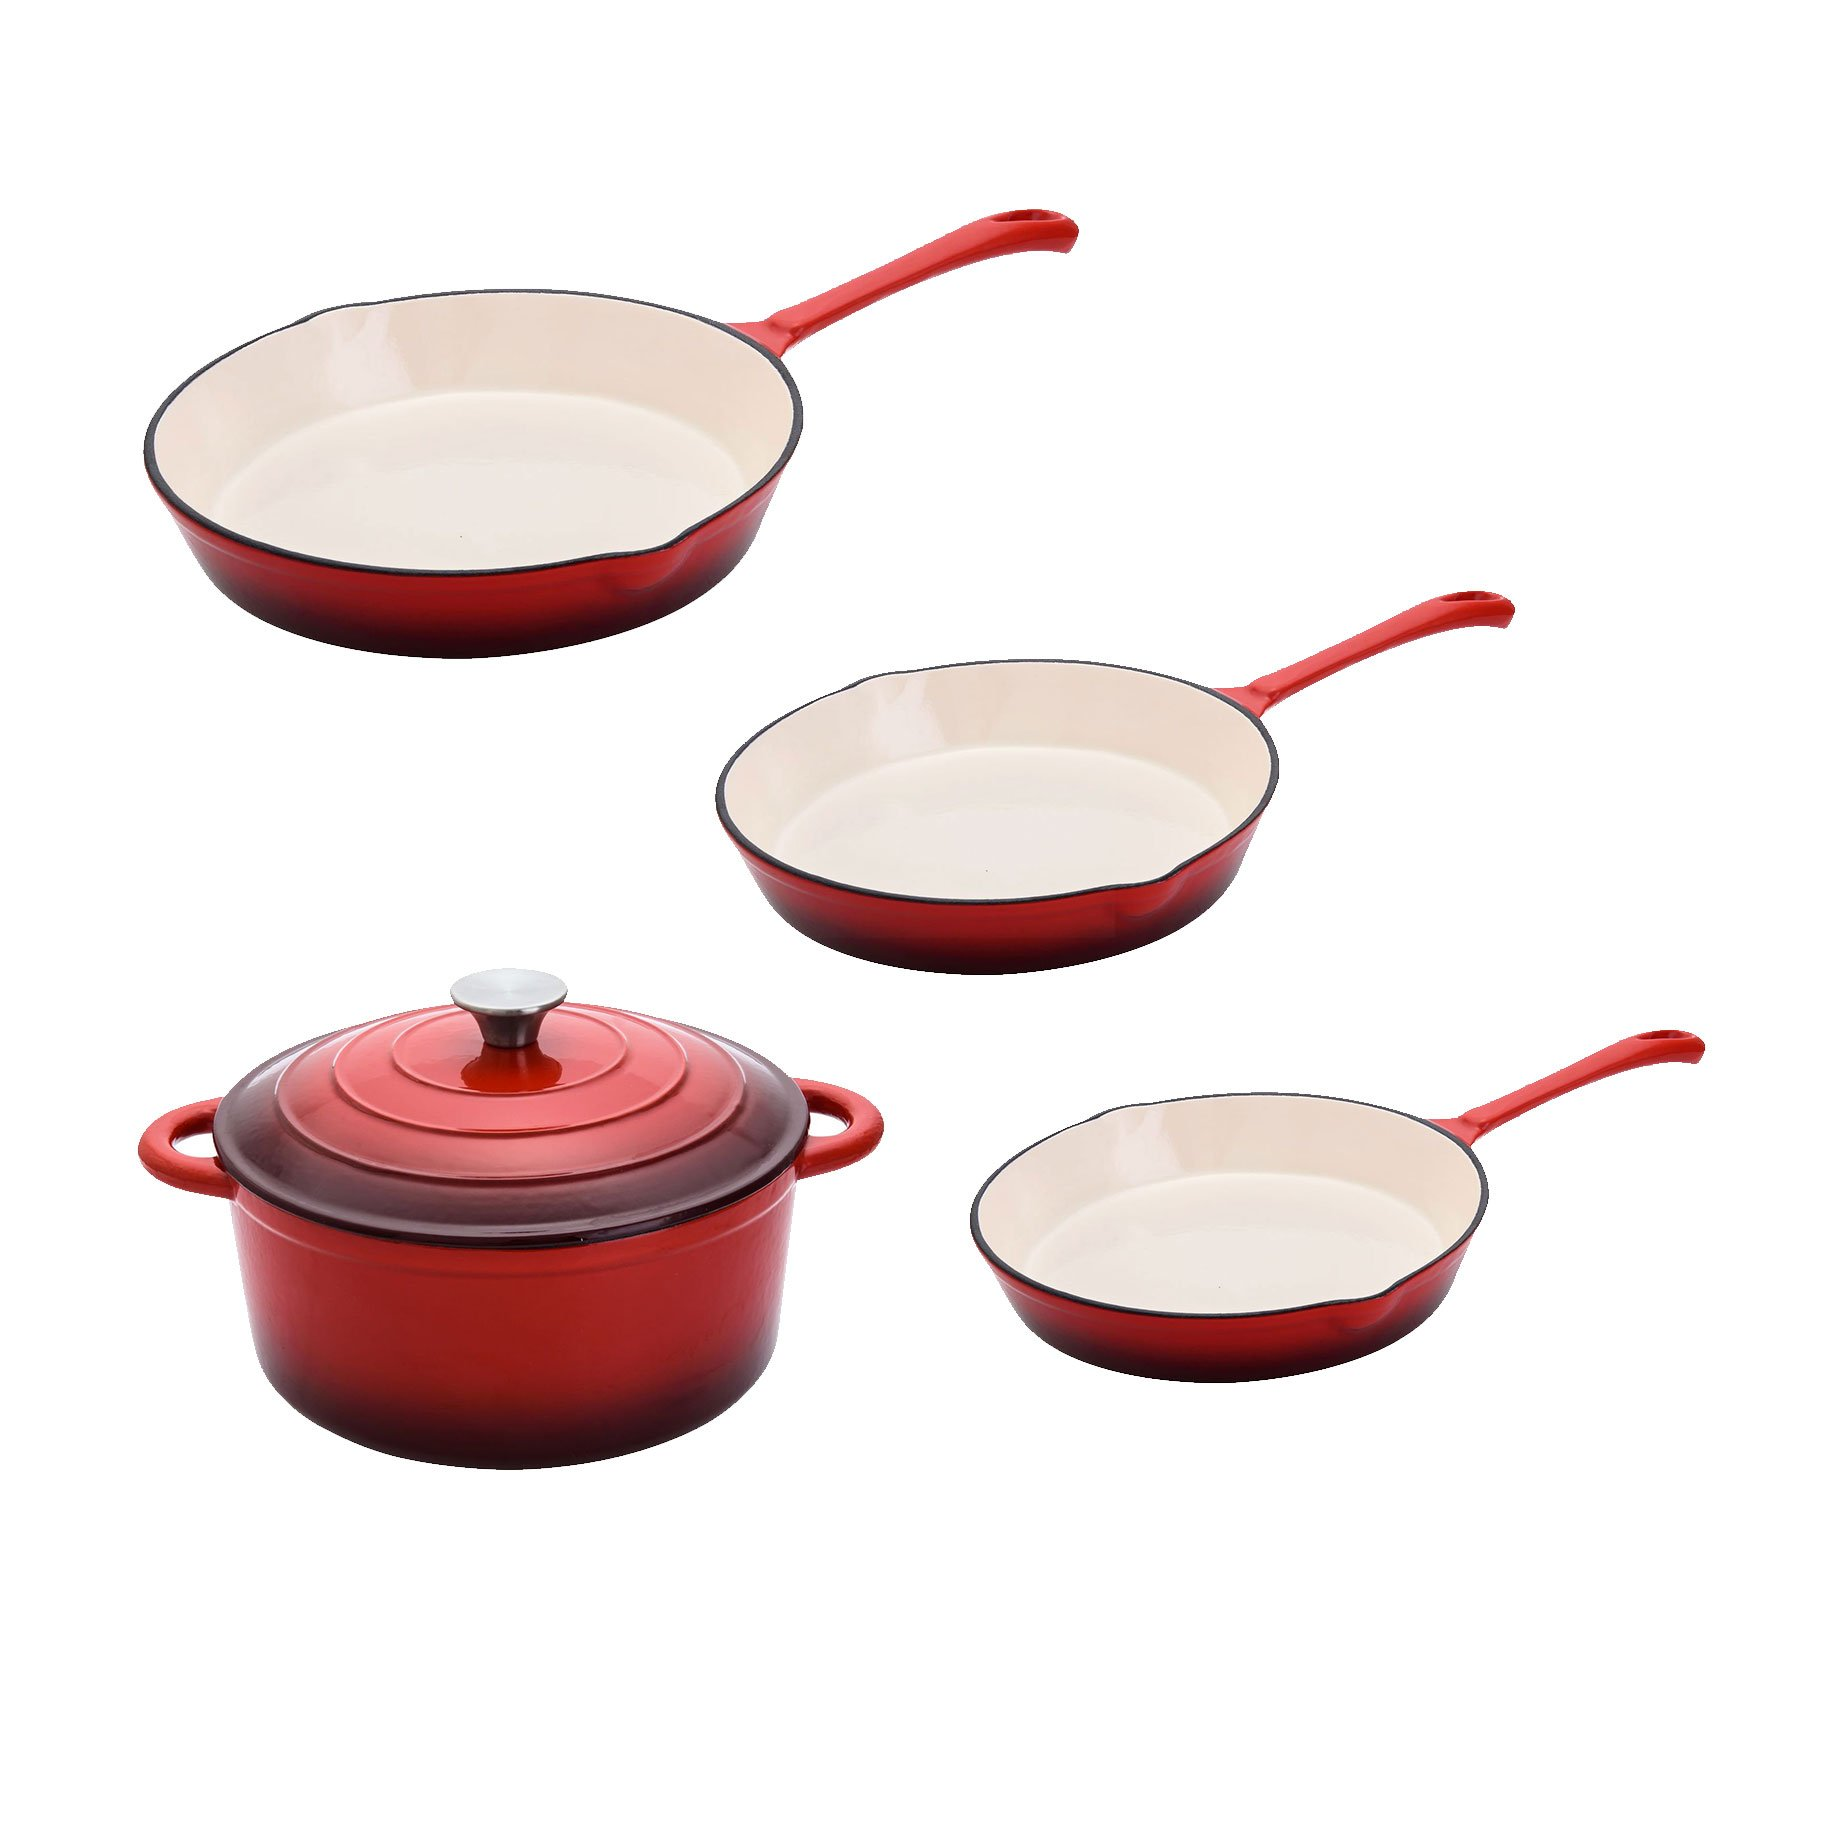 Hamilton Beach Covered Dutch Oven Pot and 3 Assorted Size Cast Iron Fry Pans Set